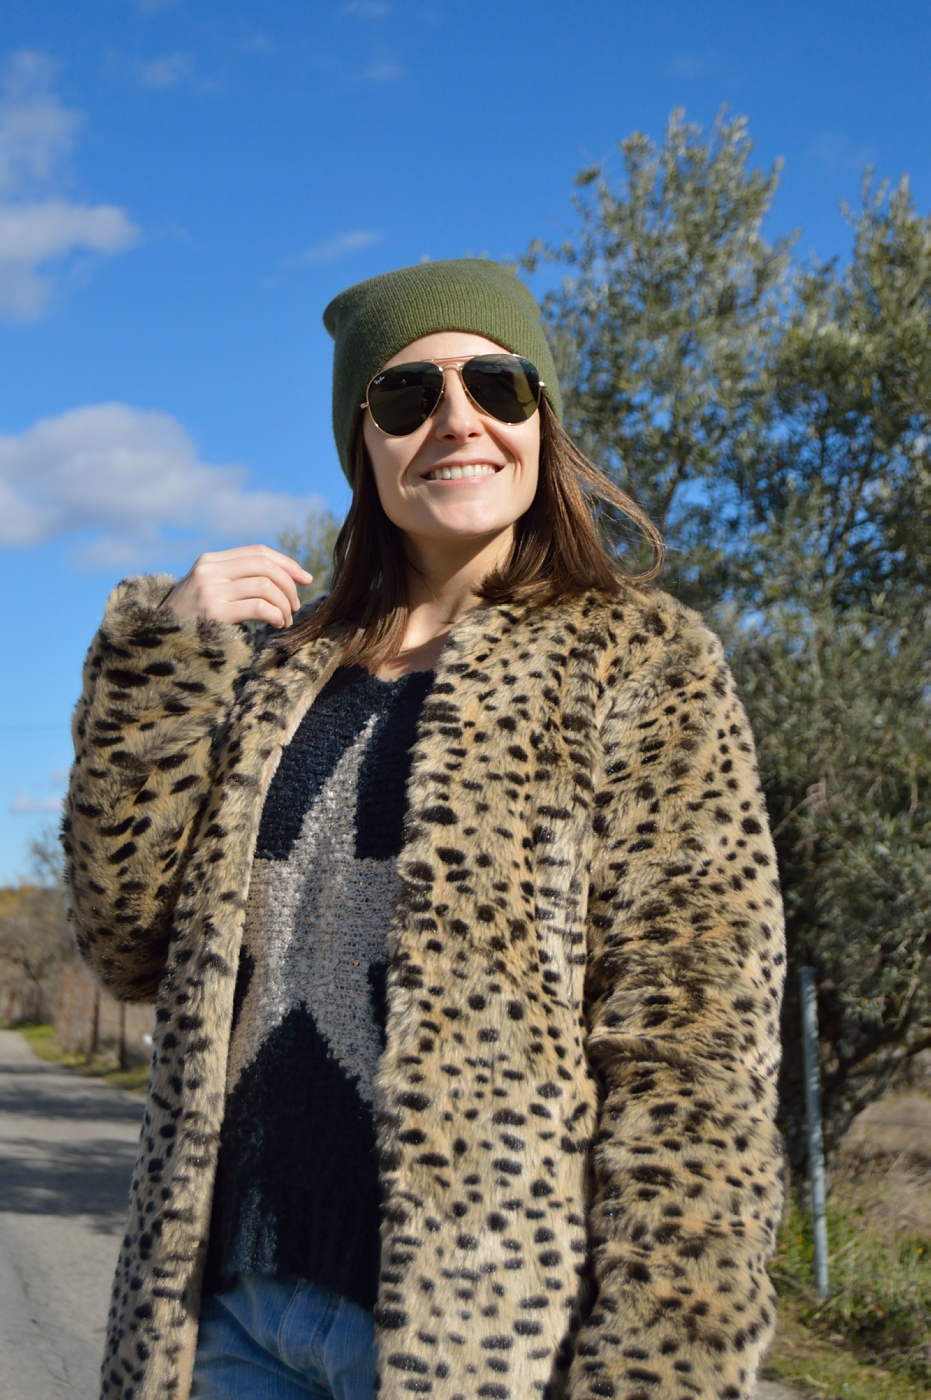 lara-vazquez-mad-lula-style-streetstyle-look-beanie-green-leopard